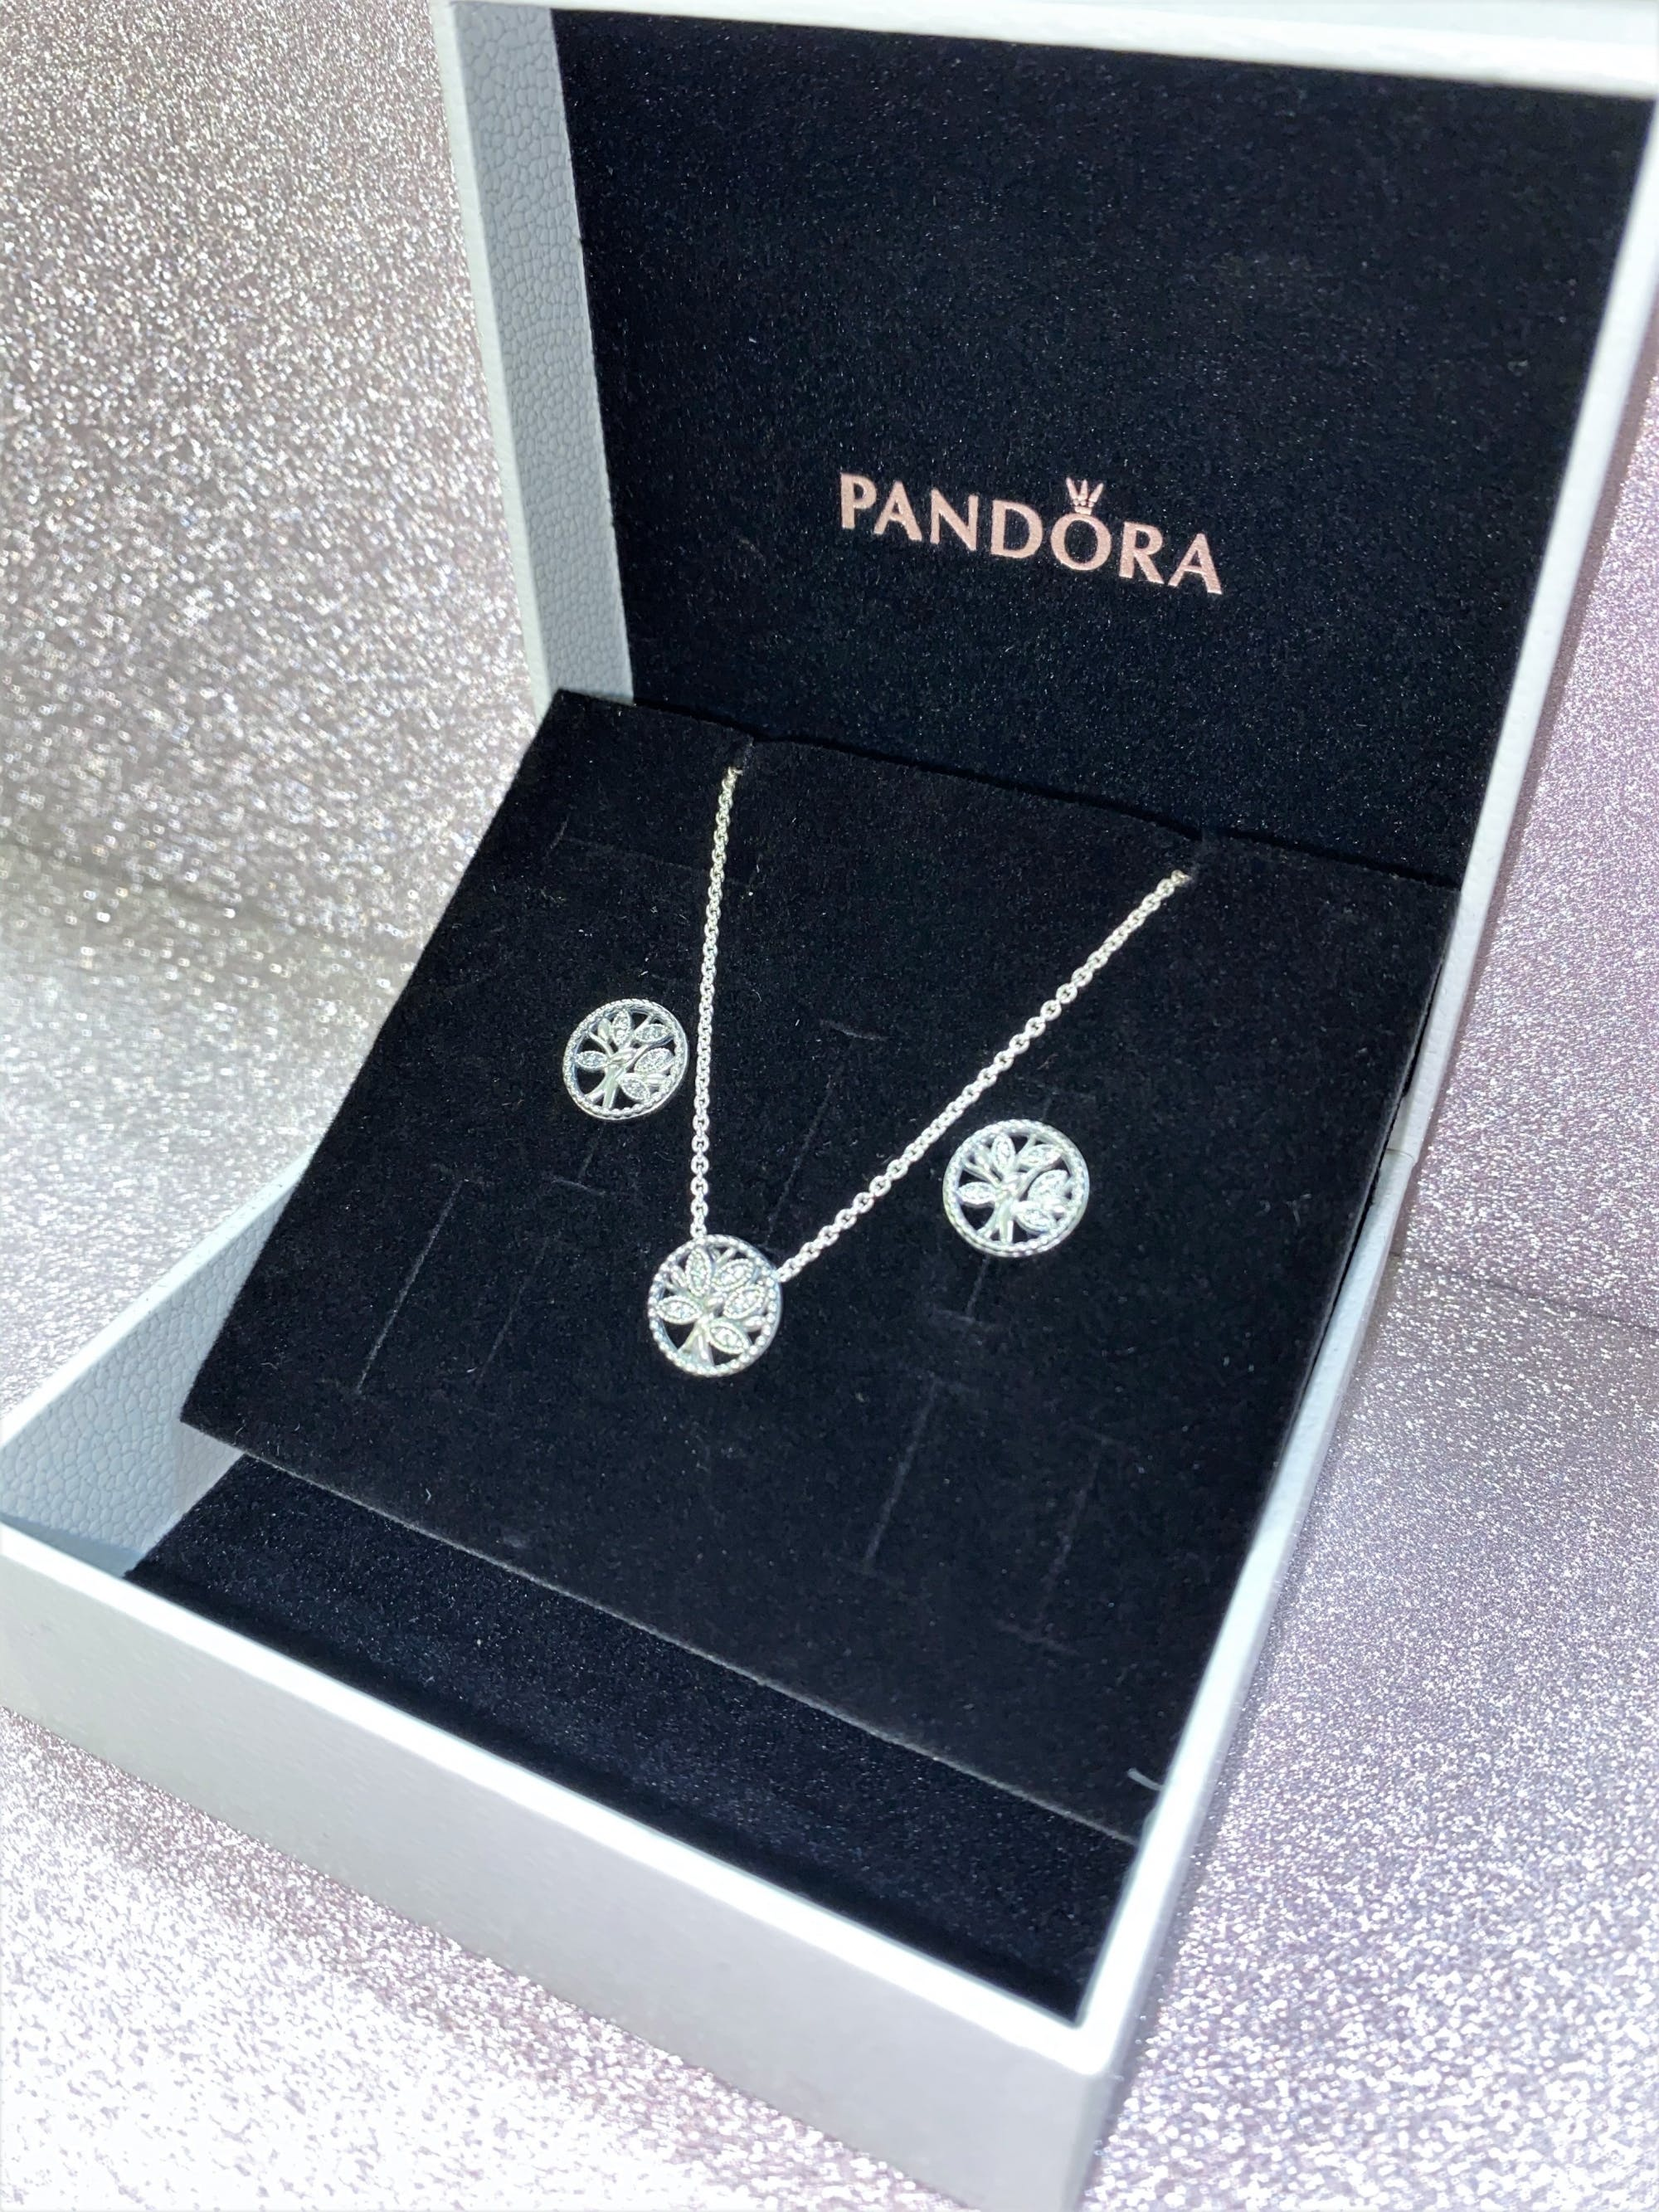 Here's another hot pick - Pandora family tree necklace and earrings set £105